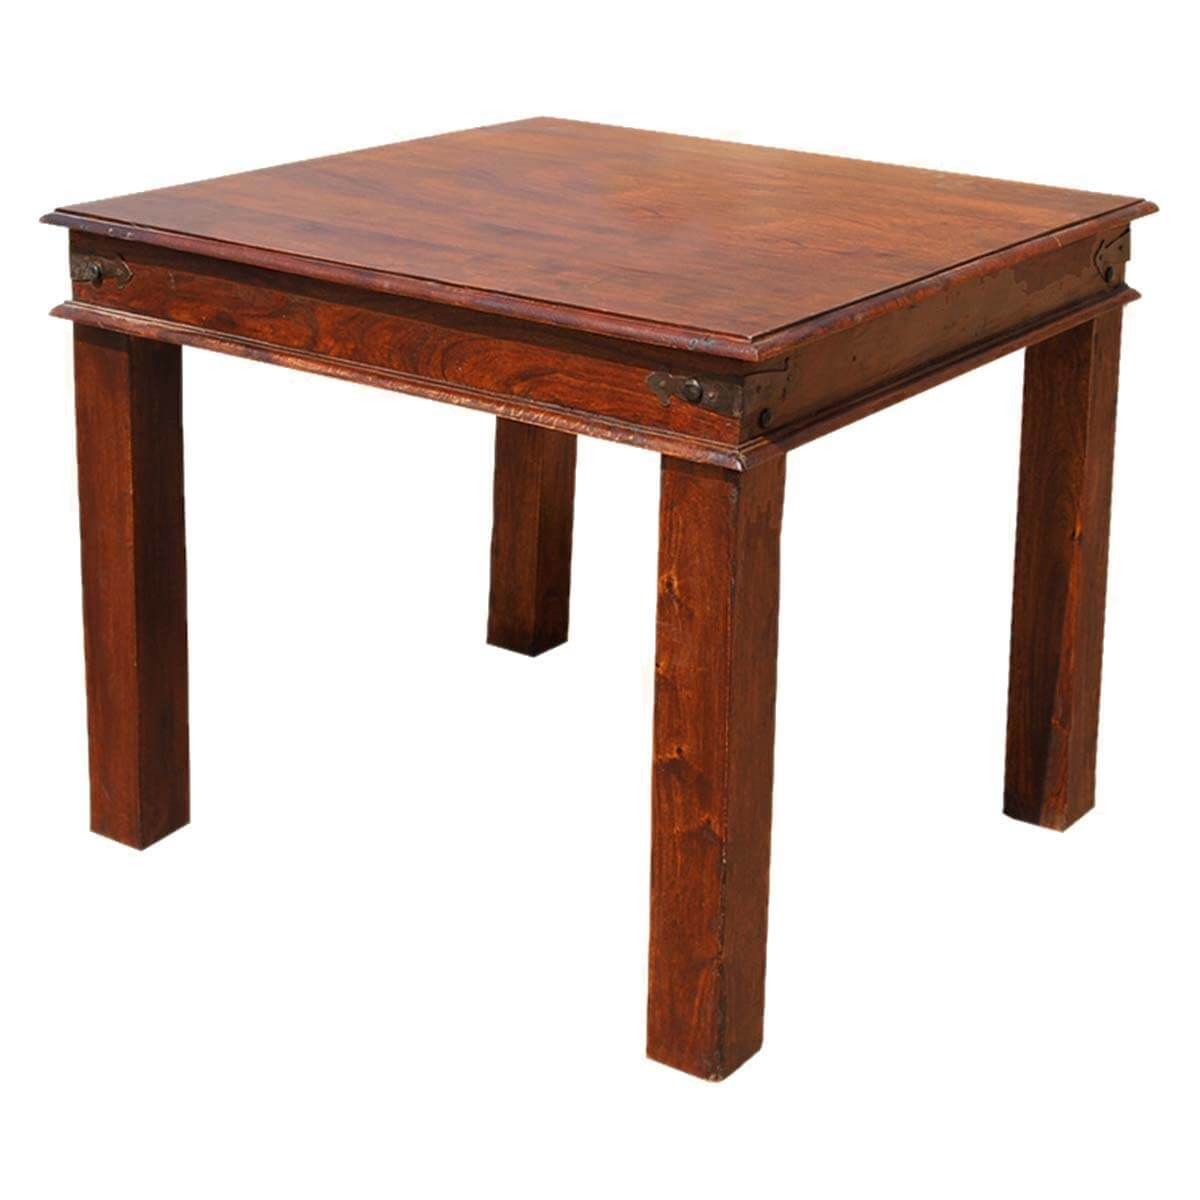 Grogan Rustic Solid Wood 4 Seater Square Dining Table